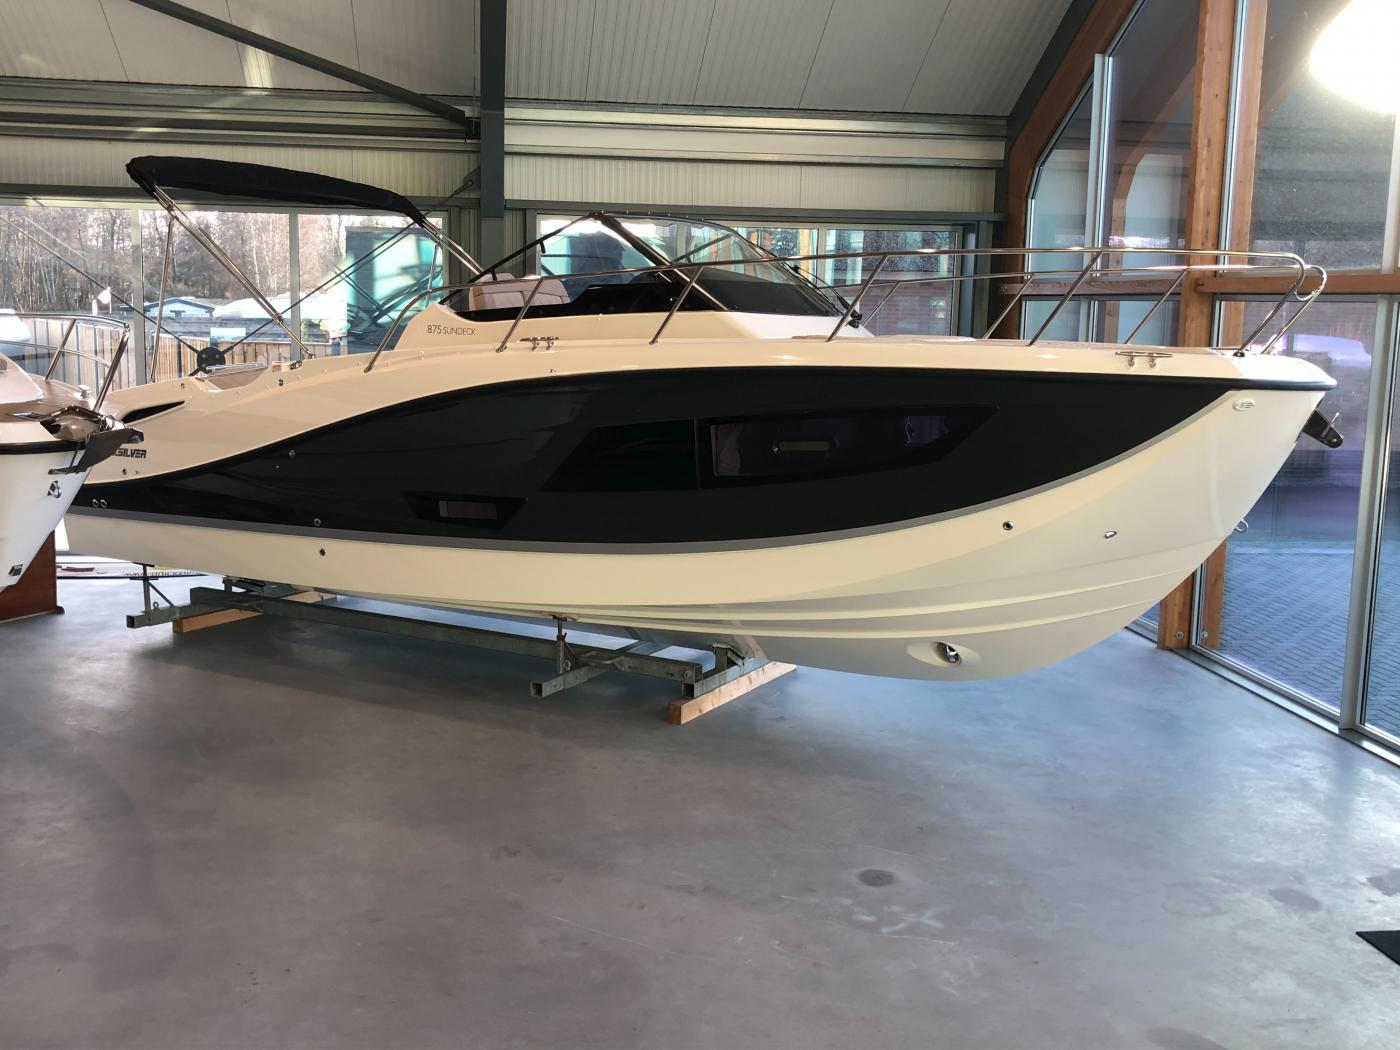 Te koop Quicksilver 875 Sundeck Sportcruisers | Bomert Watersport